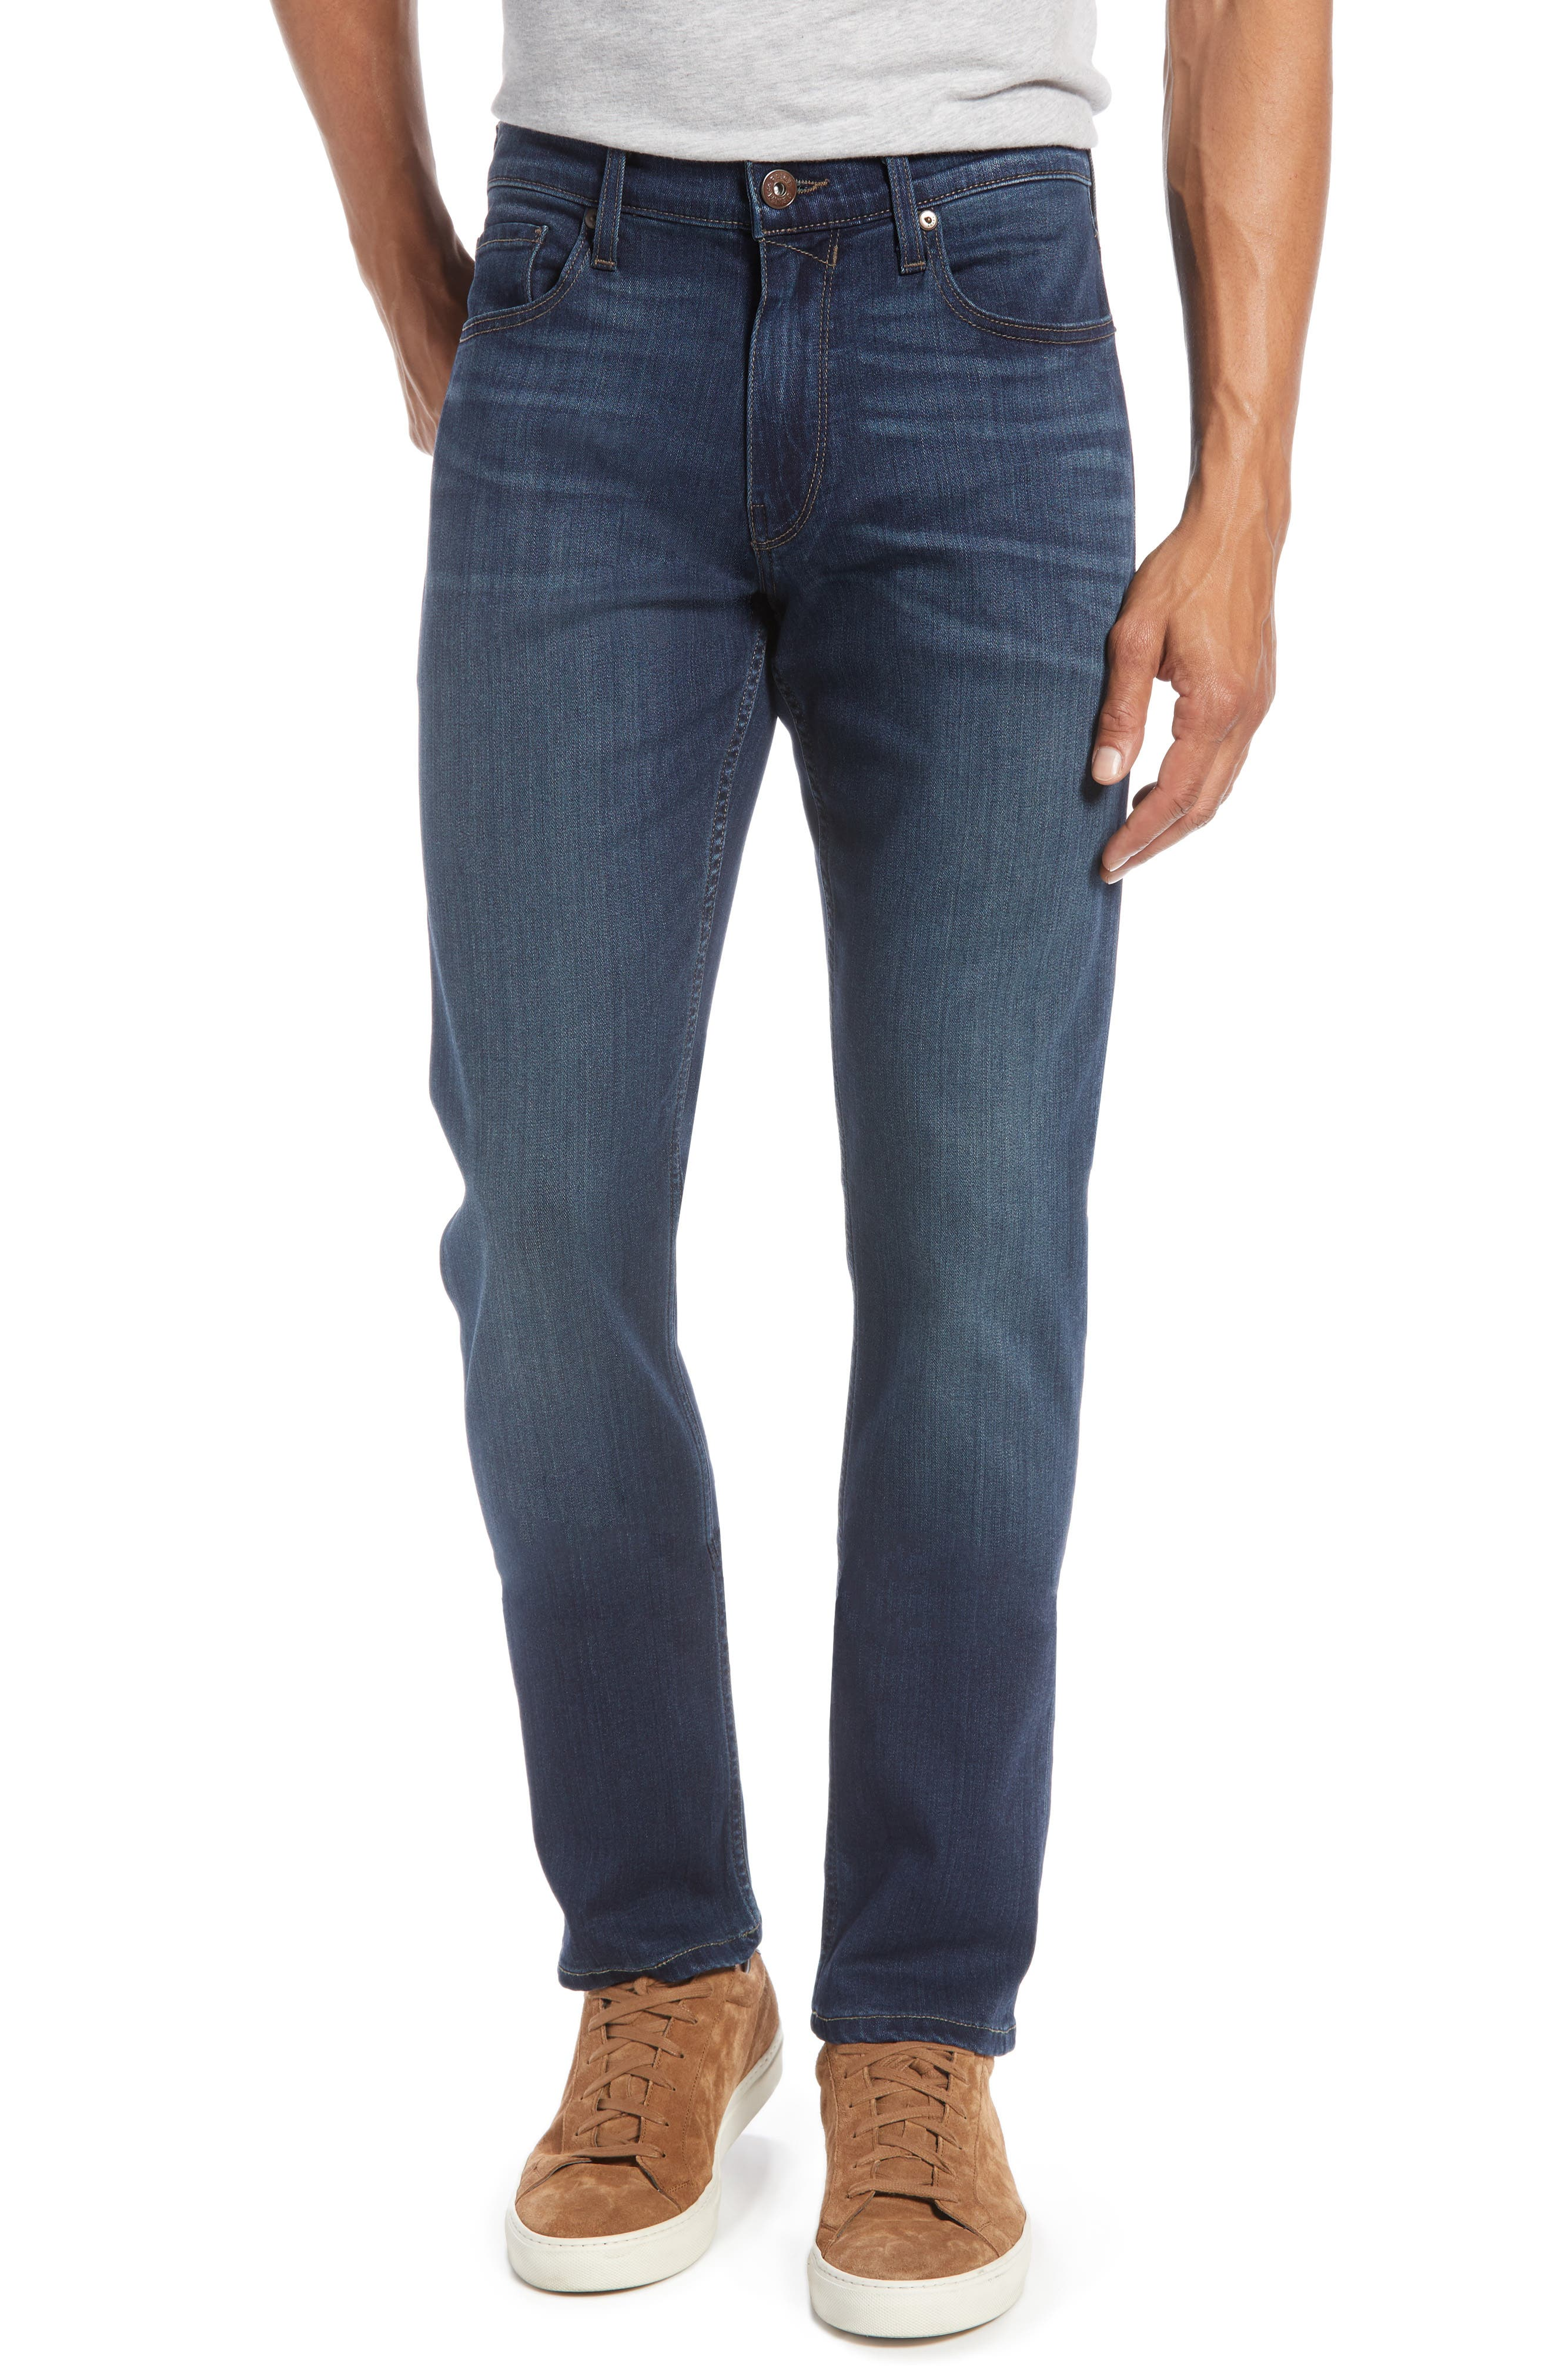 PAIGE, 'Federal' Slim Straight Leg Jeans, Alternate thumbnail 2, color, BLAKELY